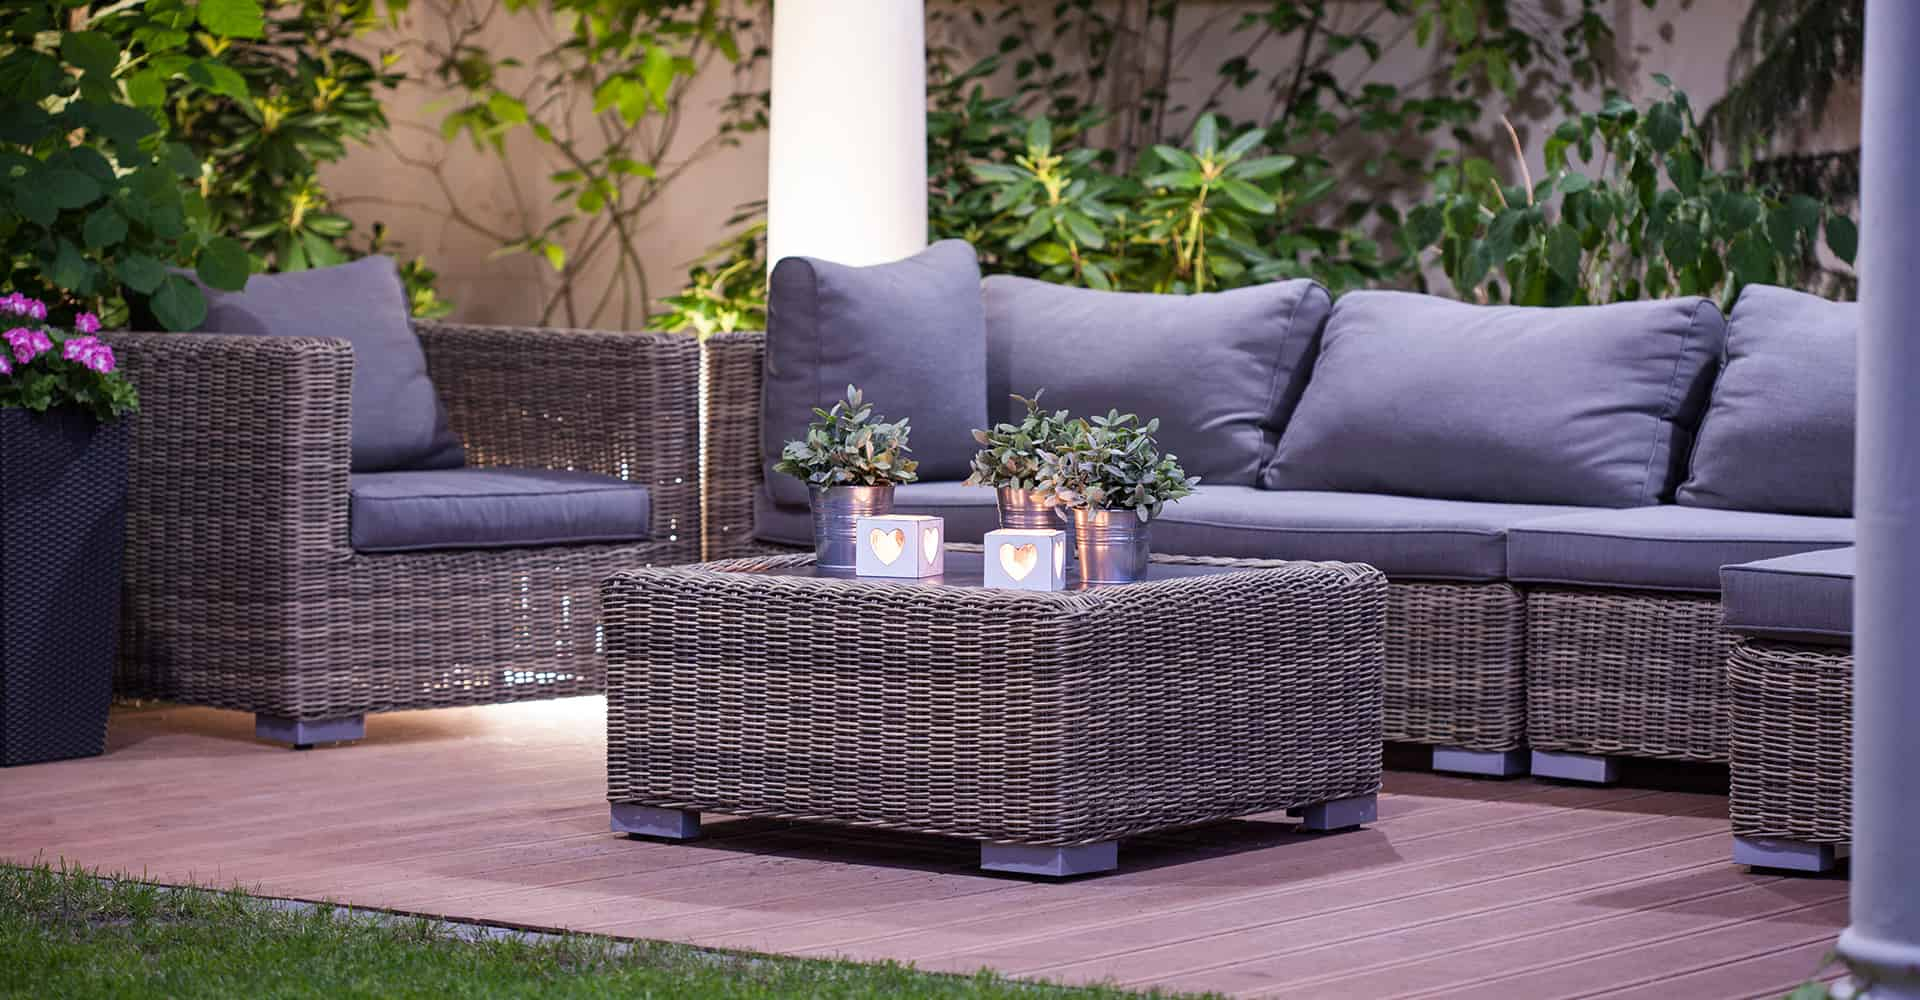 10 Best Rattan Furniture Sets 2020 Edition Diy Garden with dimensions 1920 X 1000